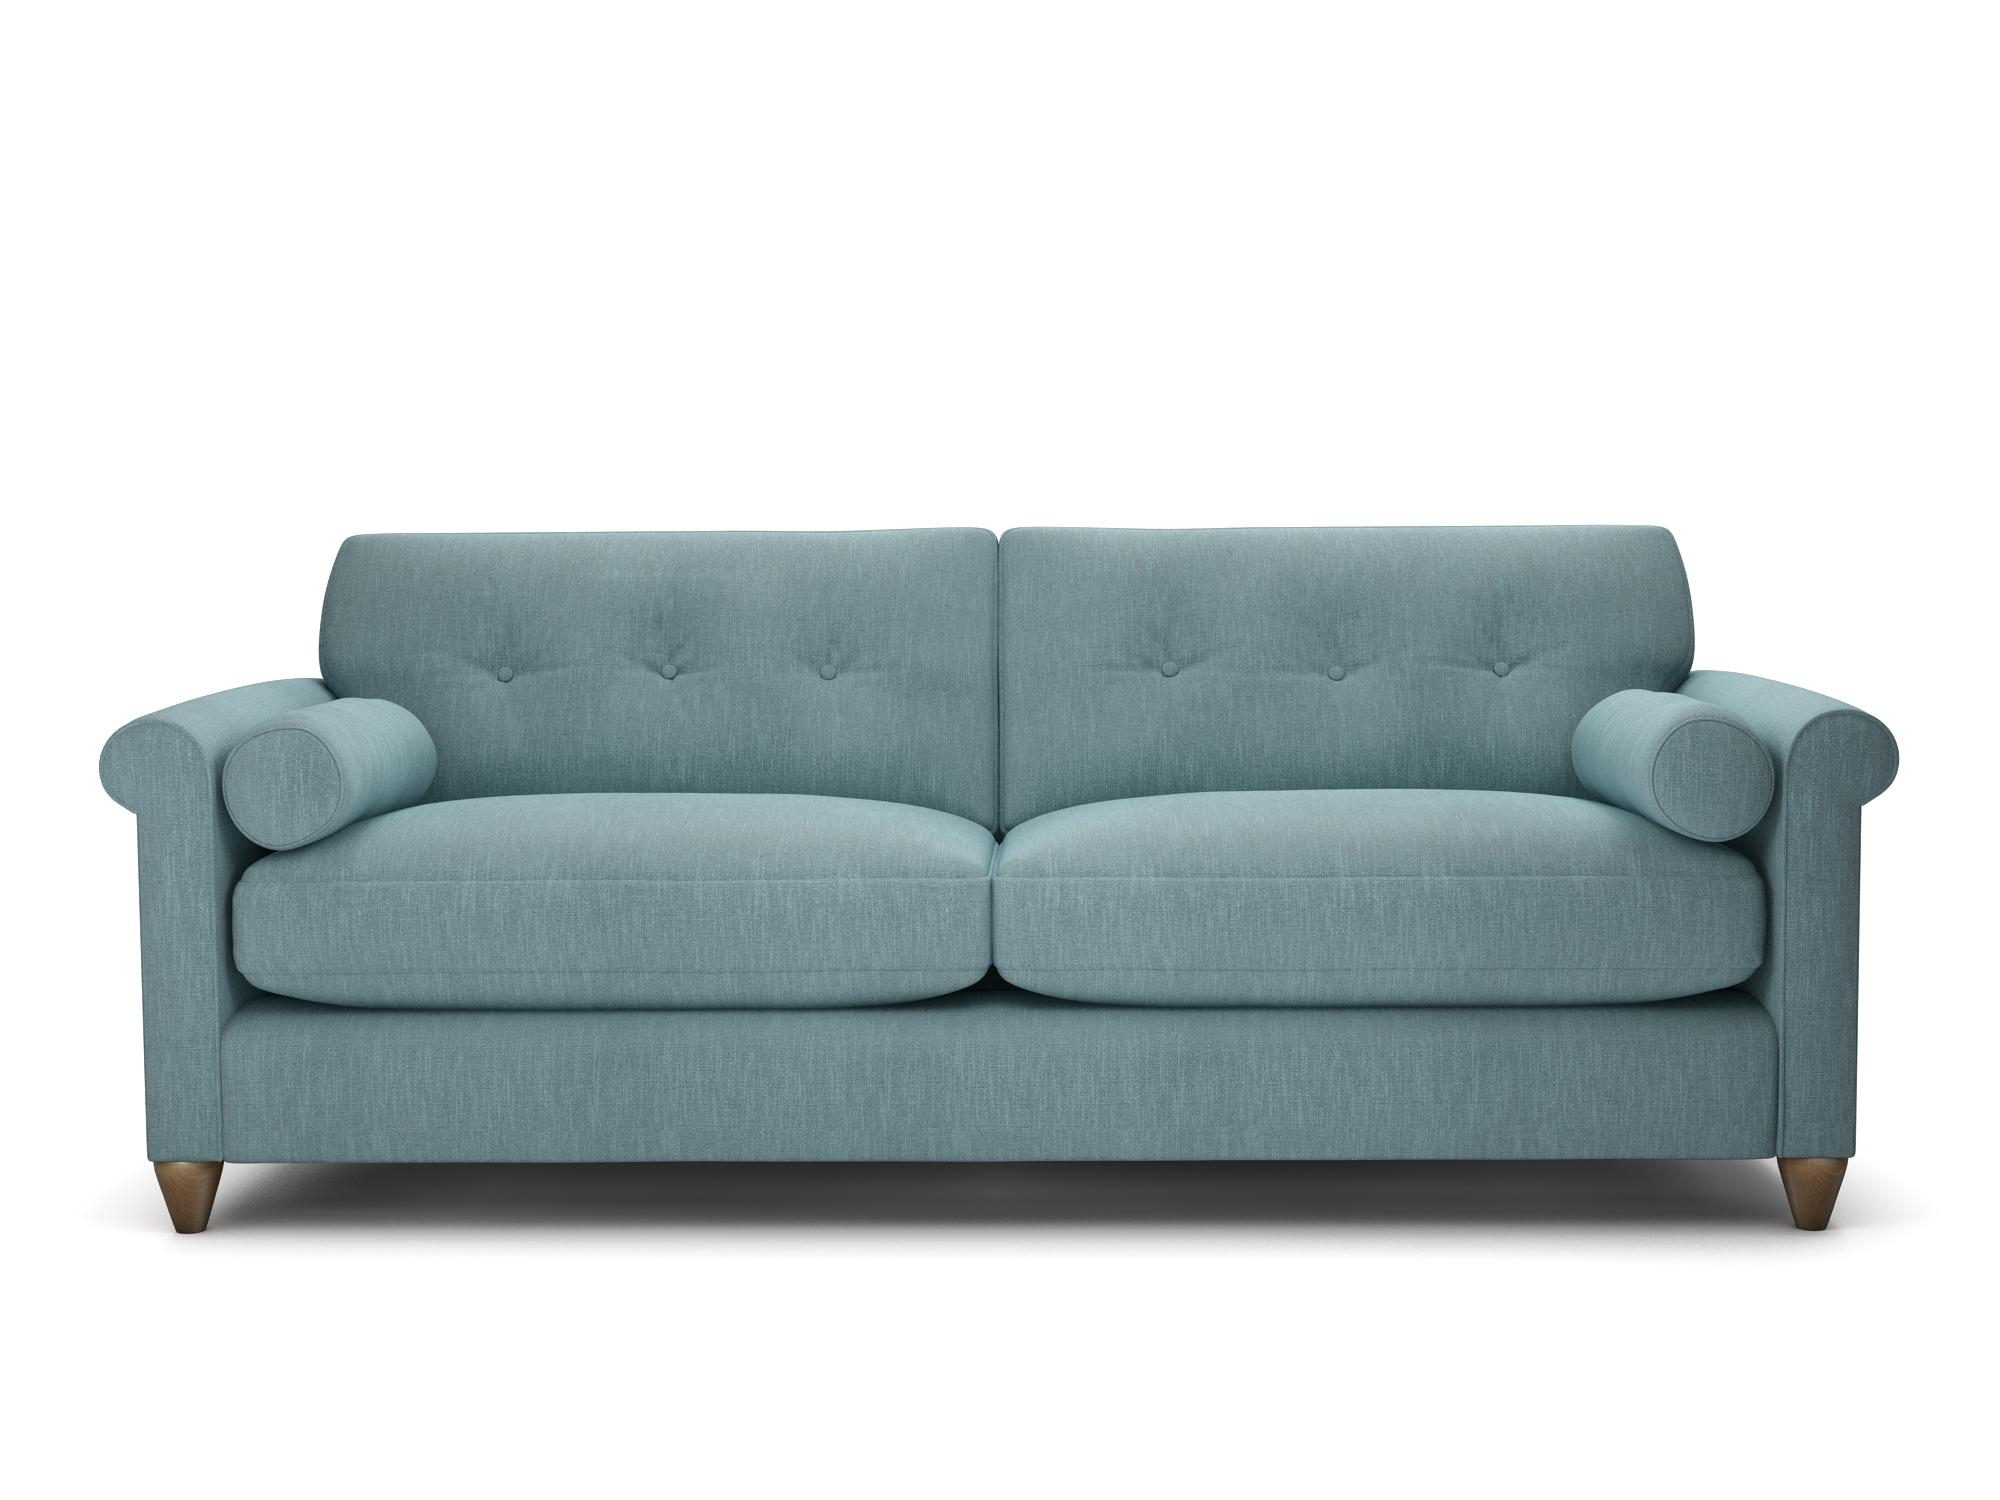 Furniture: Cozy Ava Velvet Tufted Sleeper Sofa For Home Furniture Regarding Ava Tufted Sleeper Sofas (Image 7 of 20)